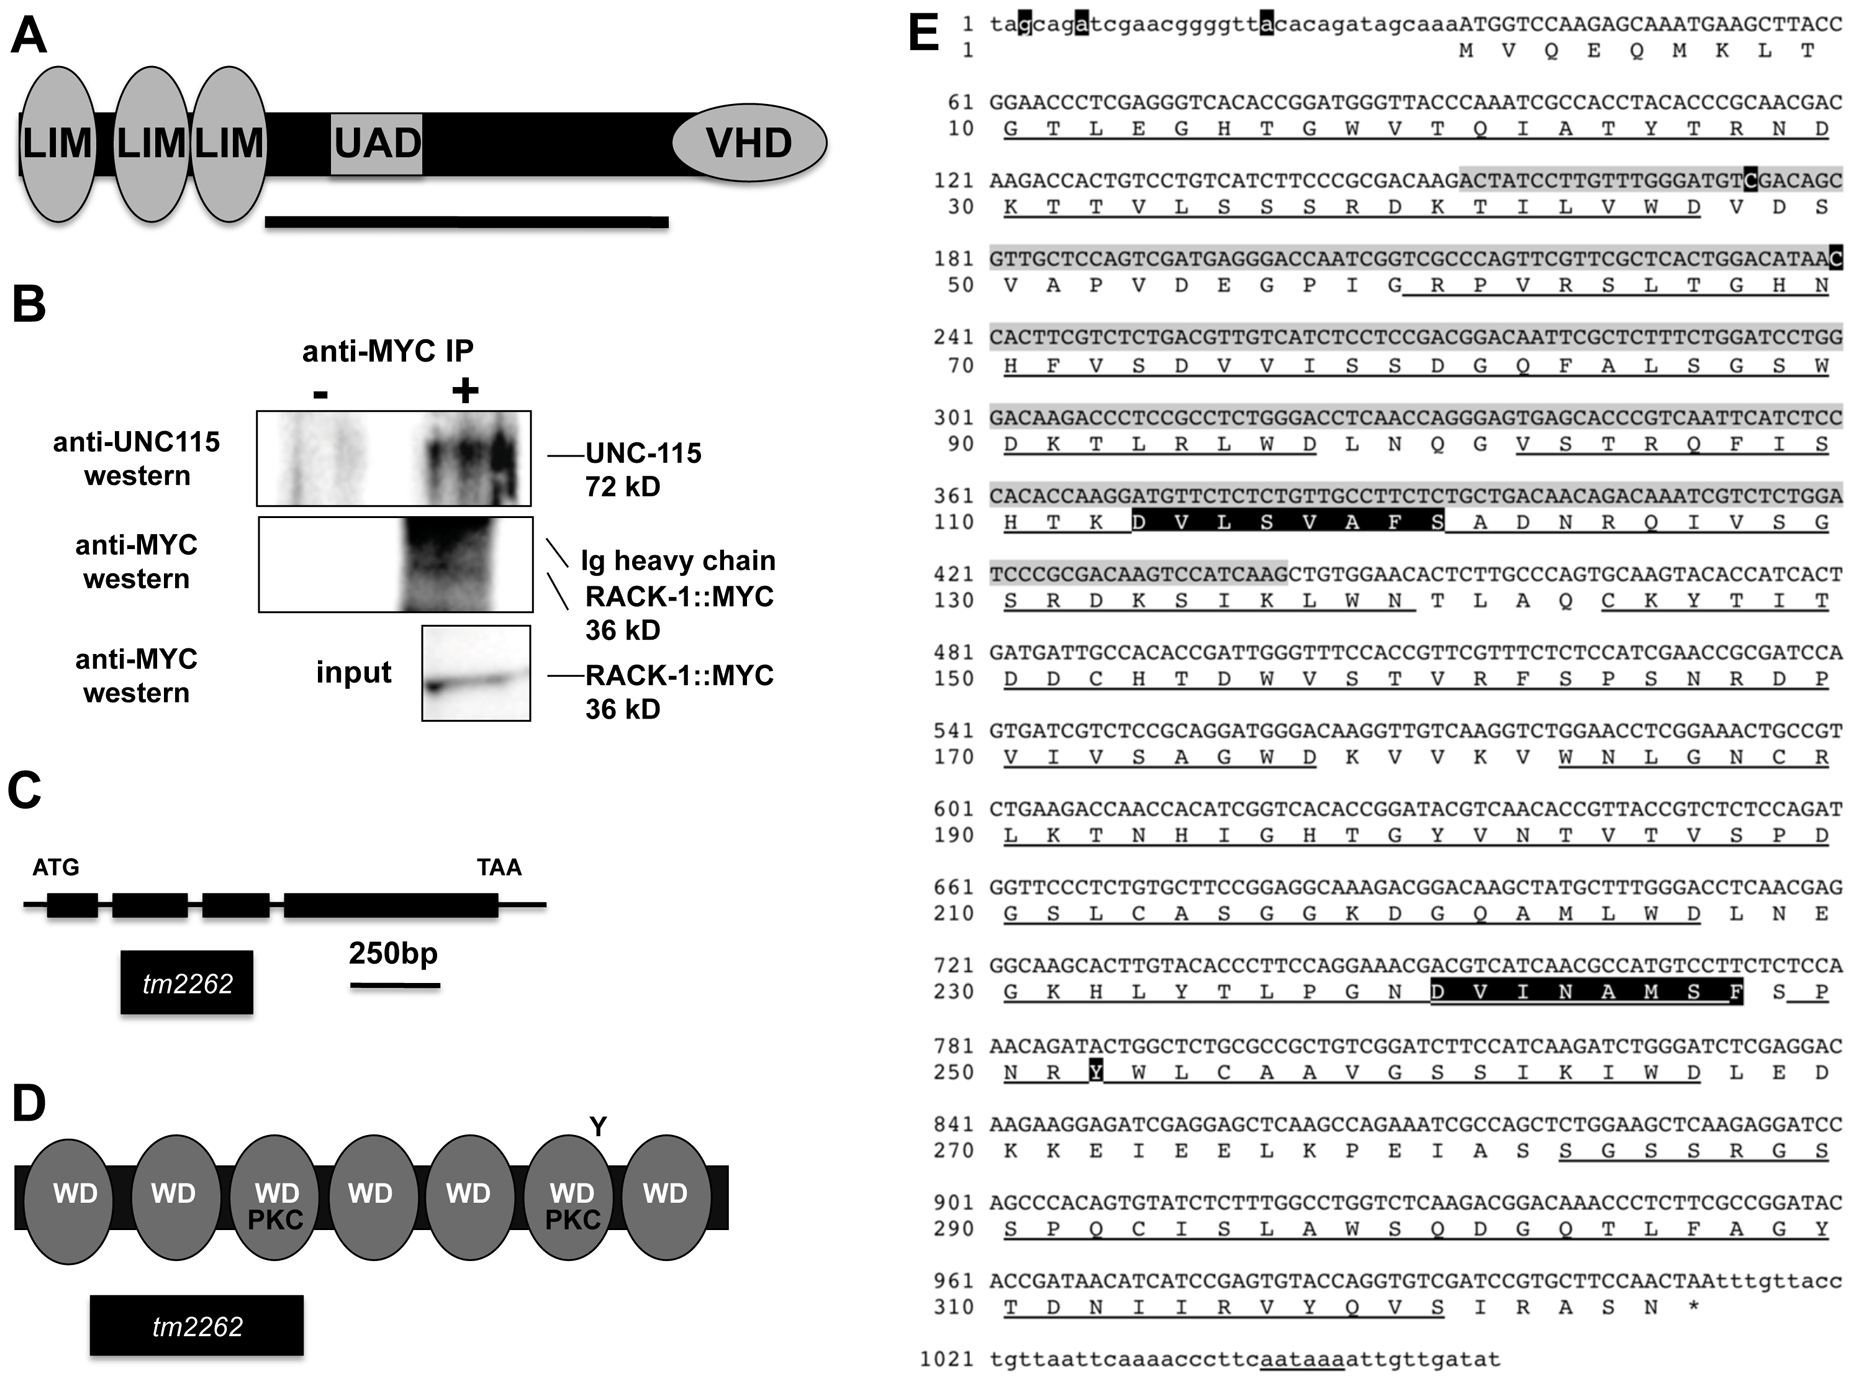 RACK-1 and UNC-115 interact by two-hybrid and co-immunoprecipitation.